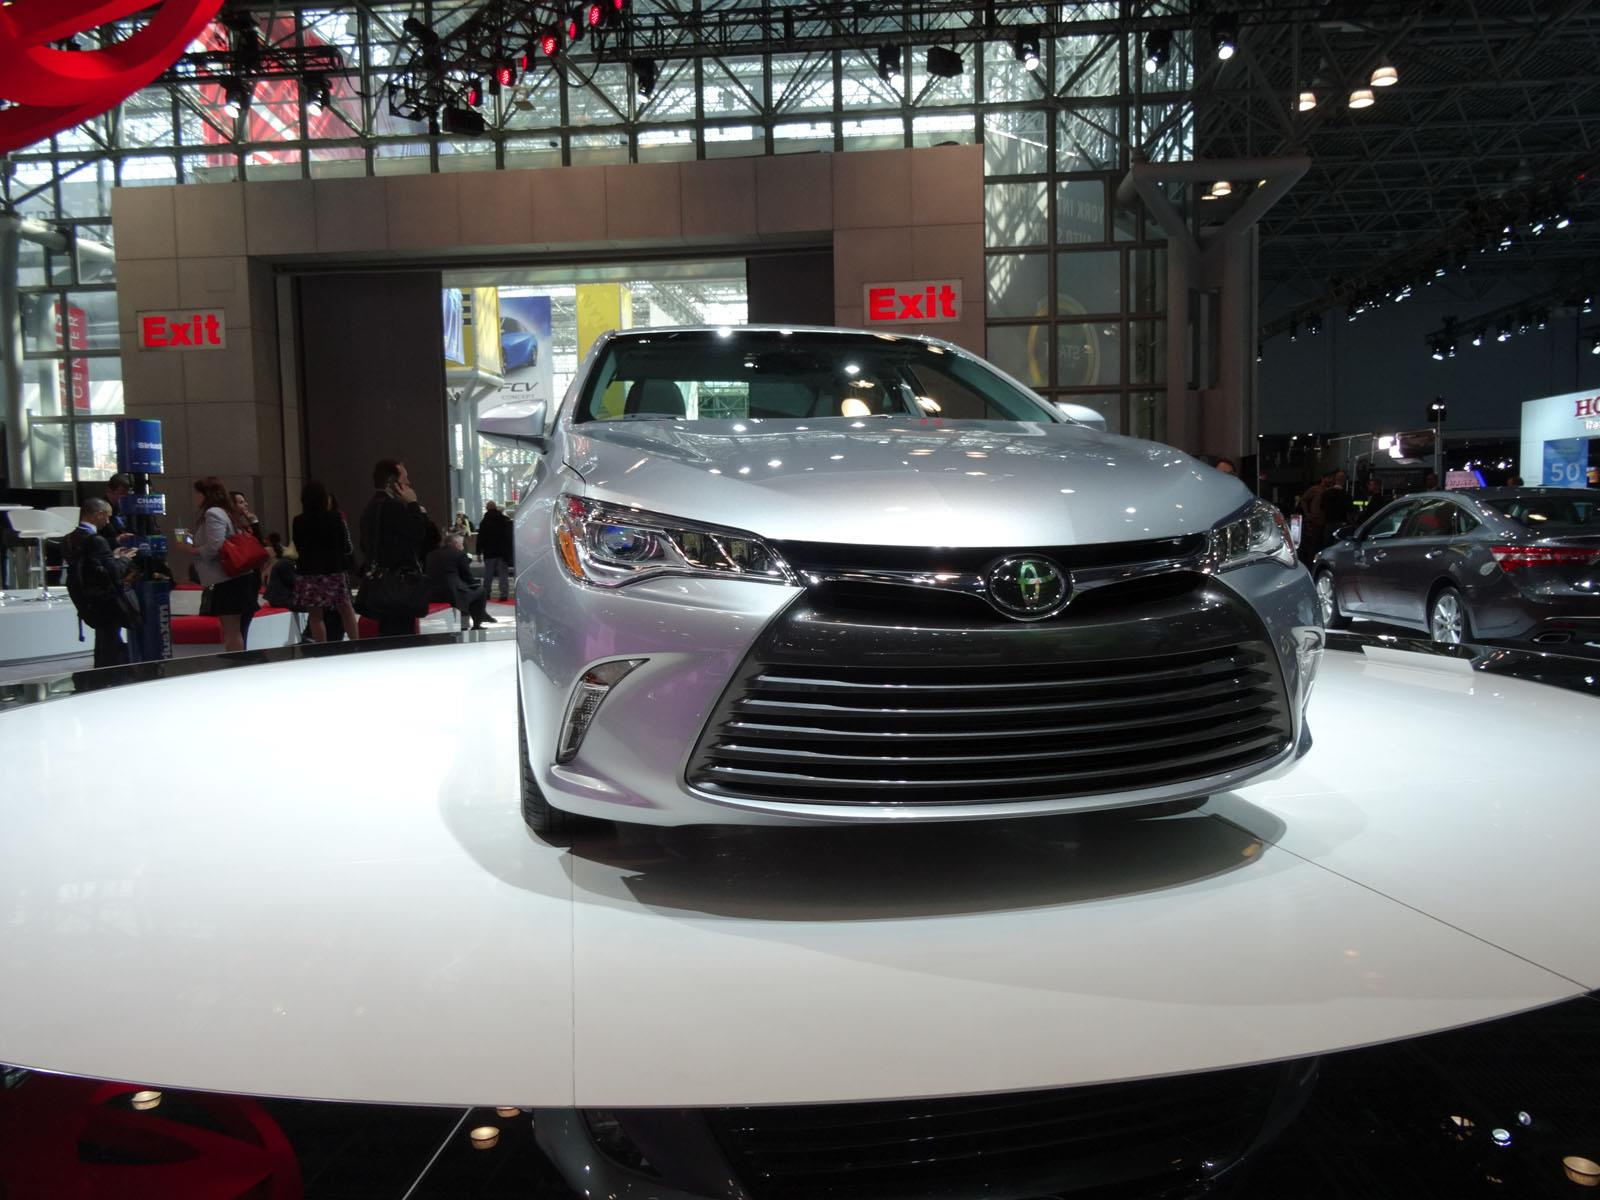 Sal n de new york 2014 toyota camry 2015 se presenta for 24 hour tanning salon nyc